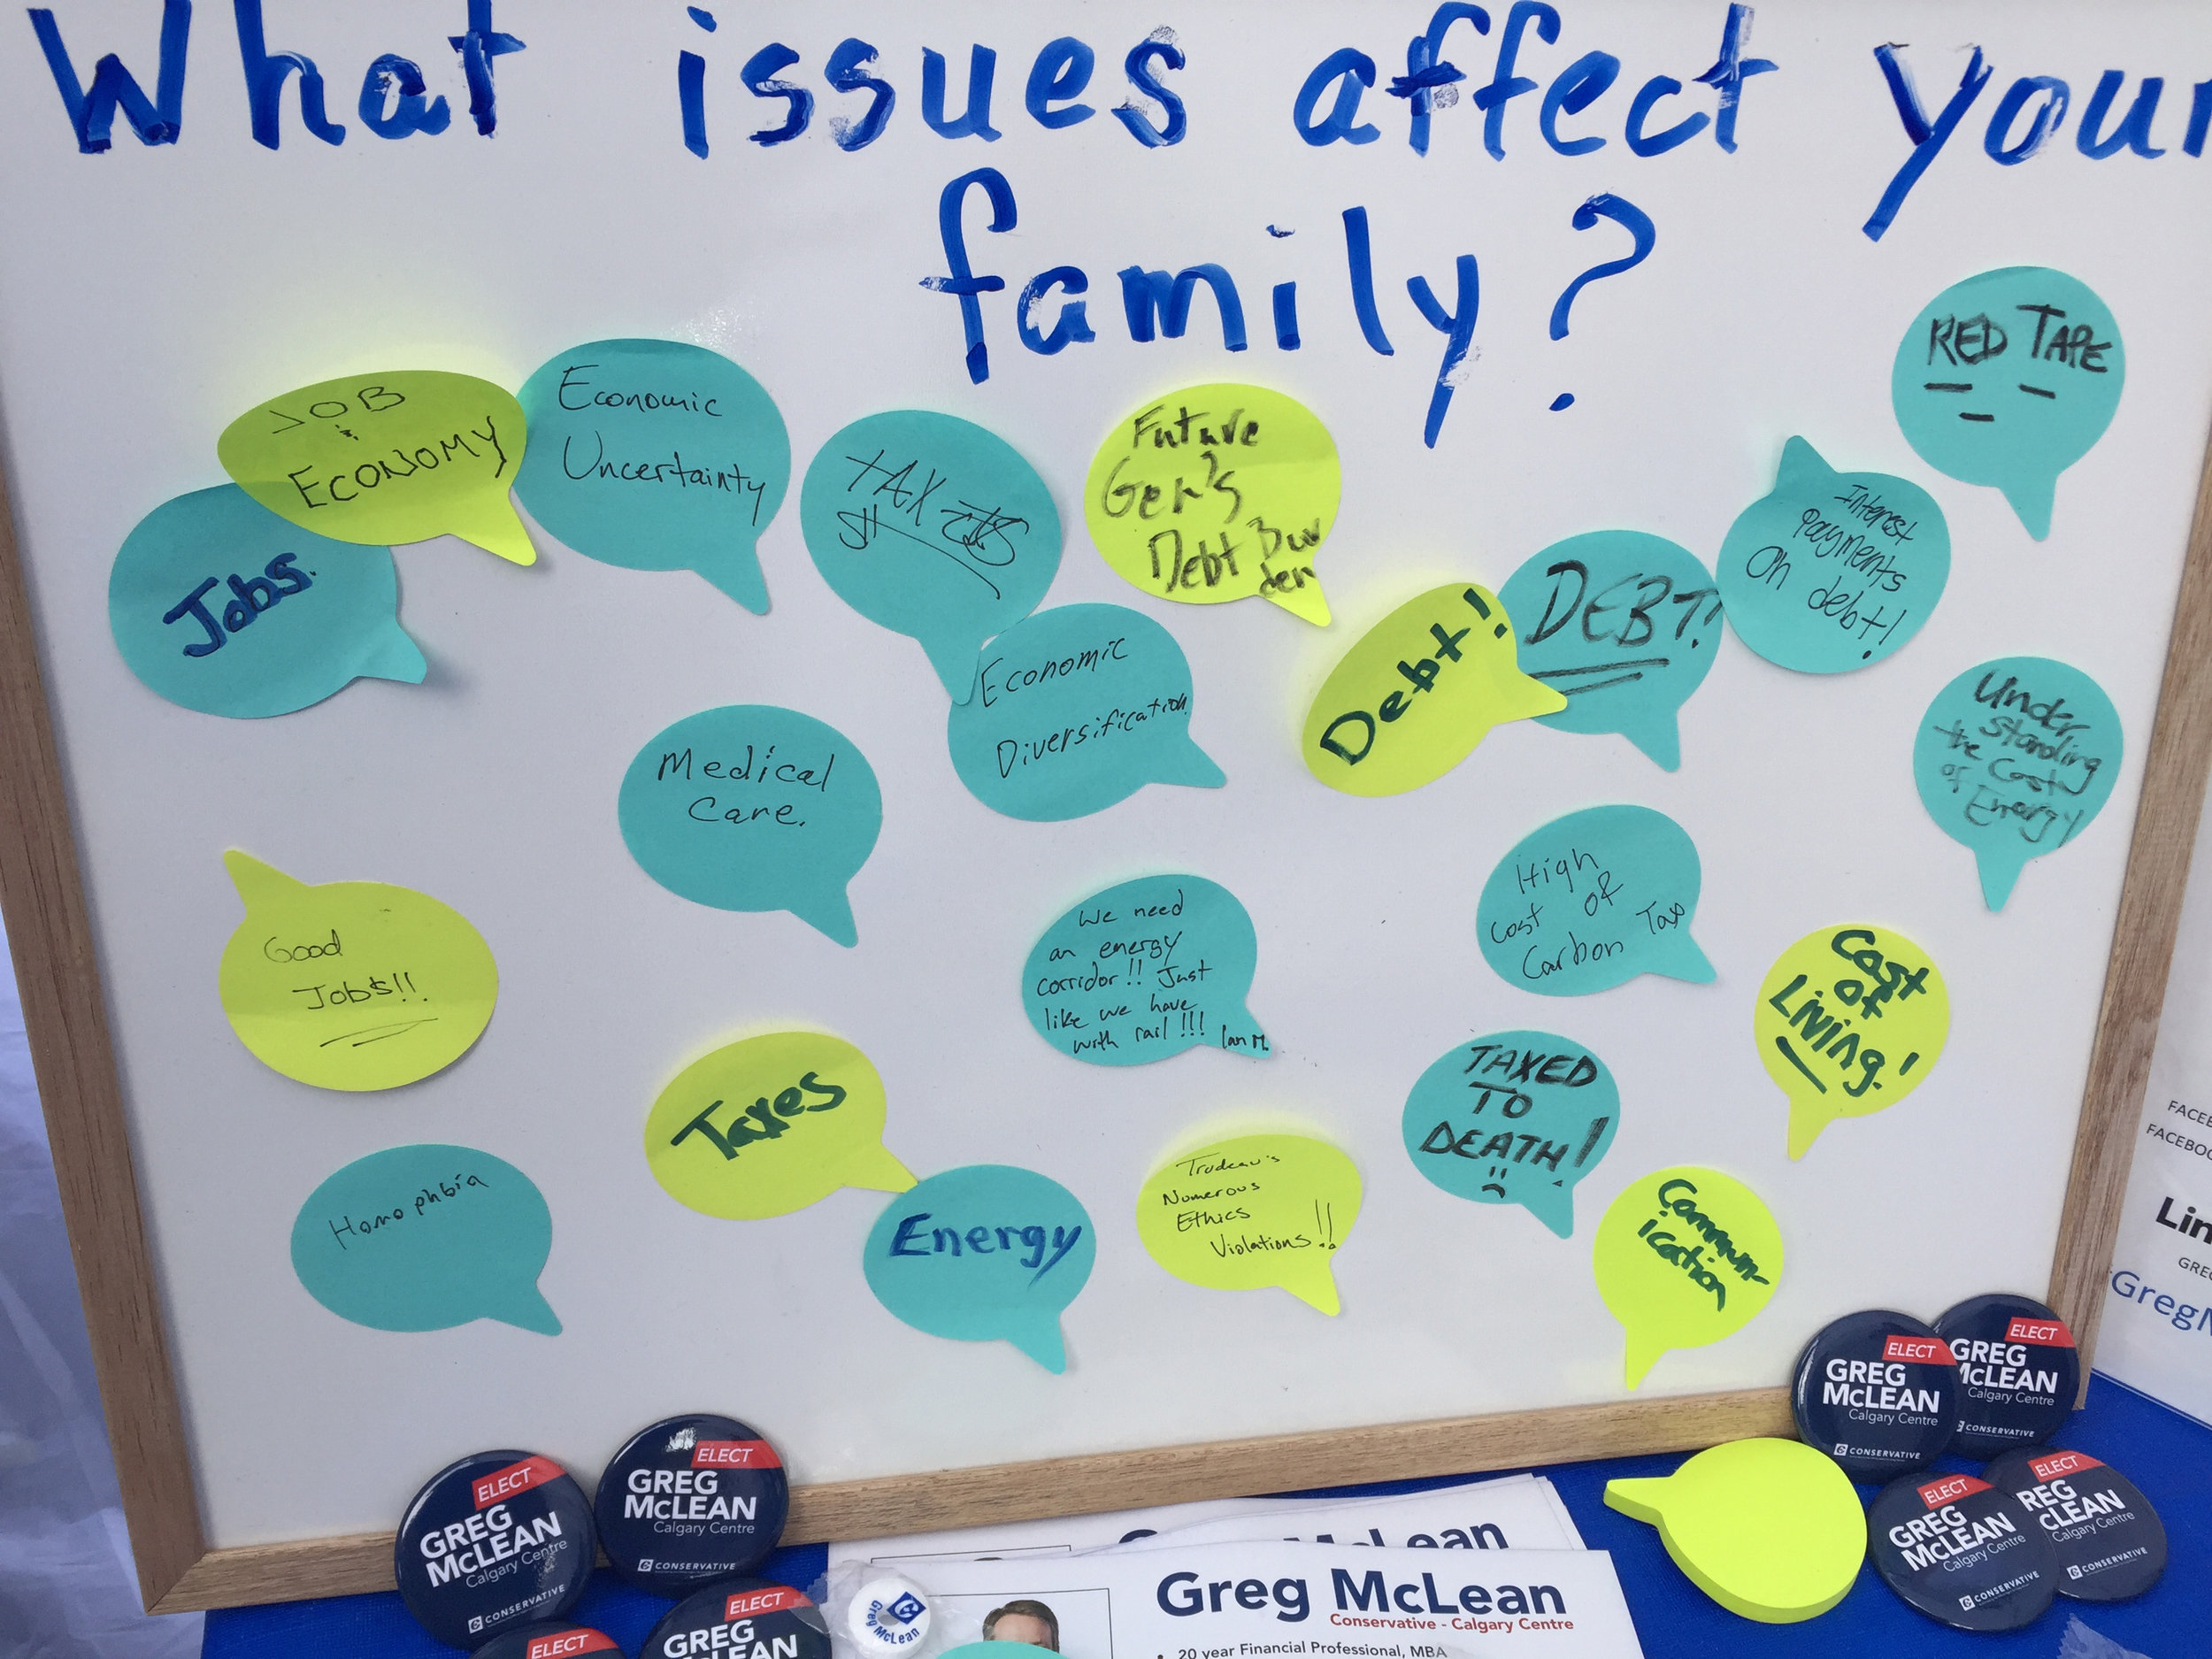 We asked visitors what most concerns them about government/politics these days. Pretty clear what people are worried about.